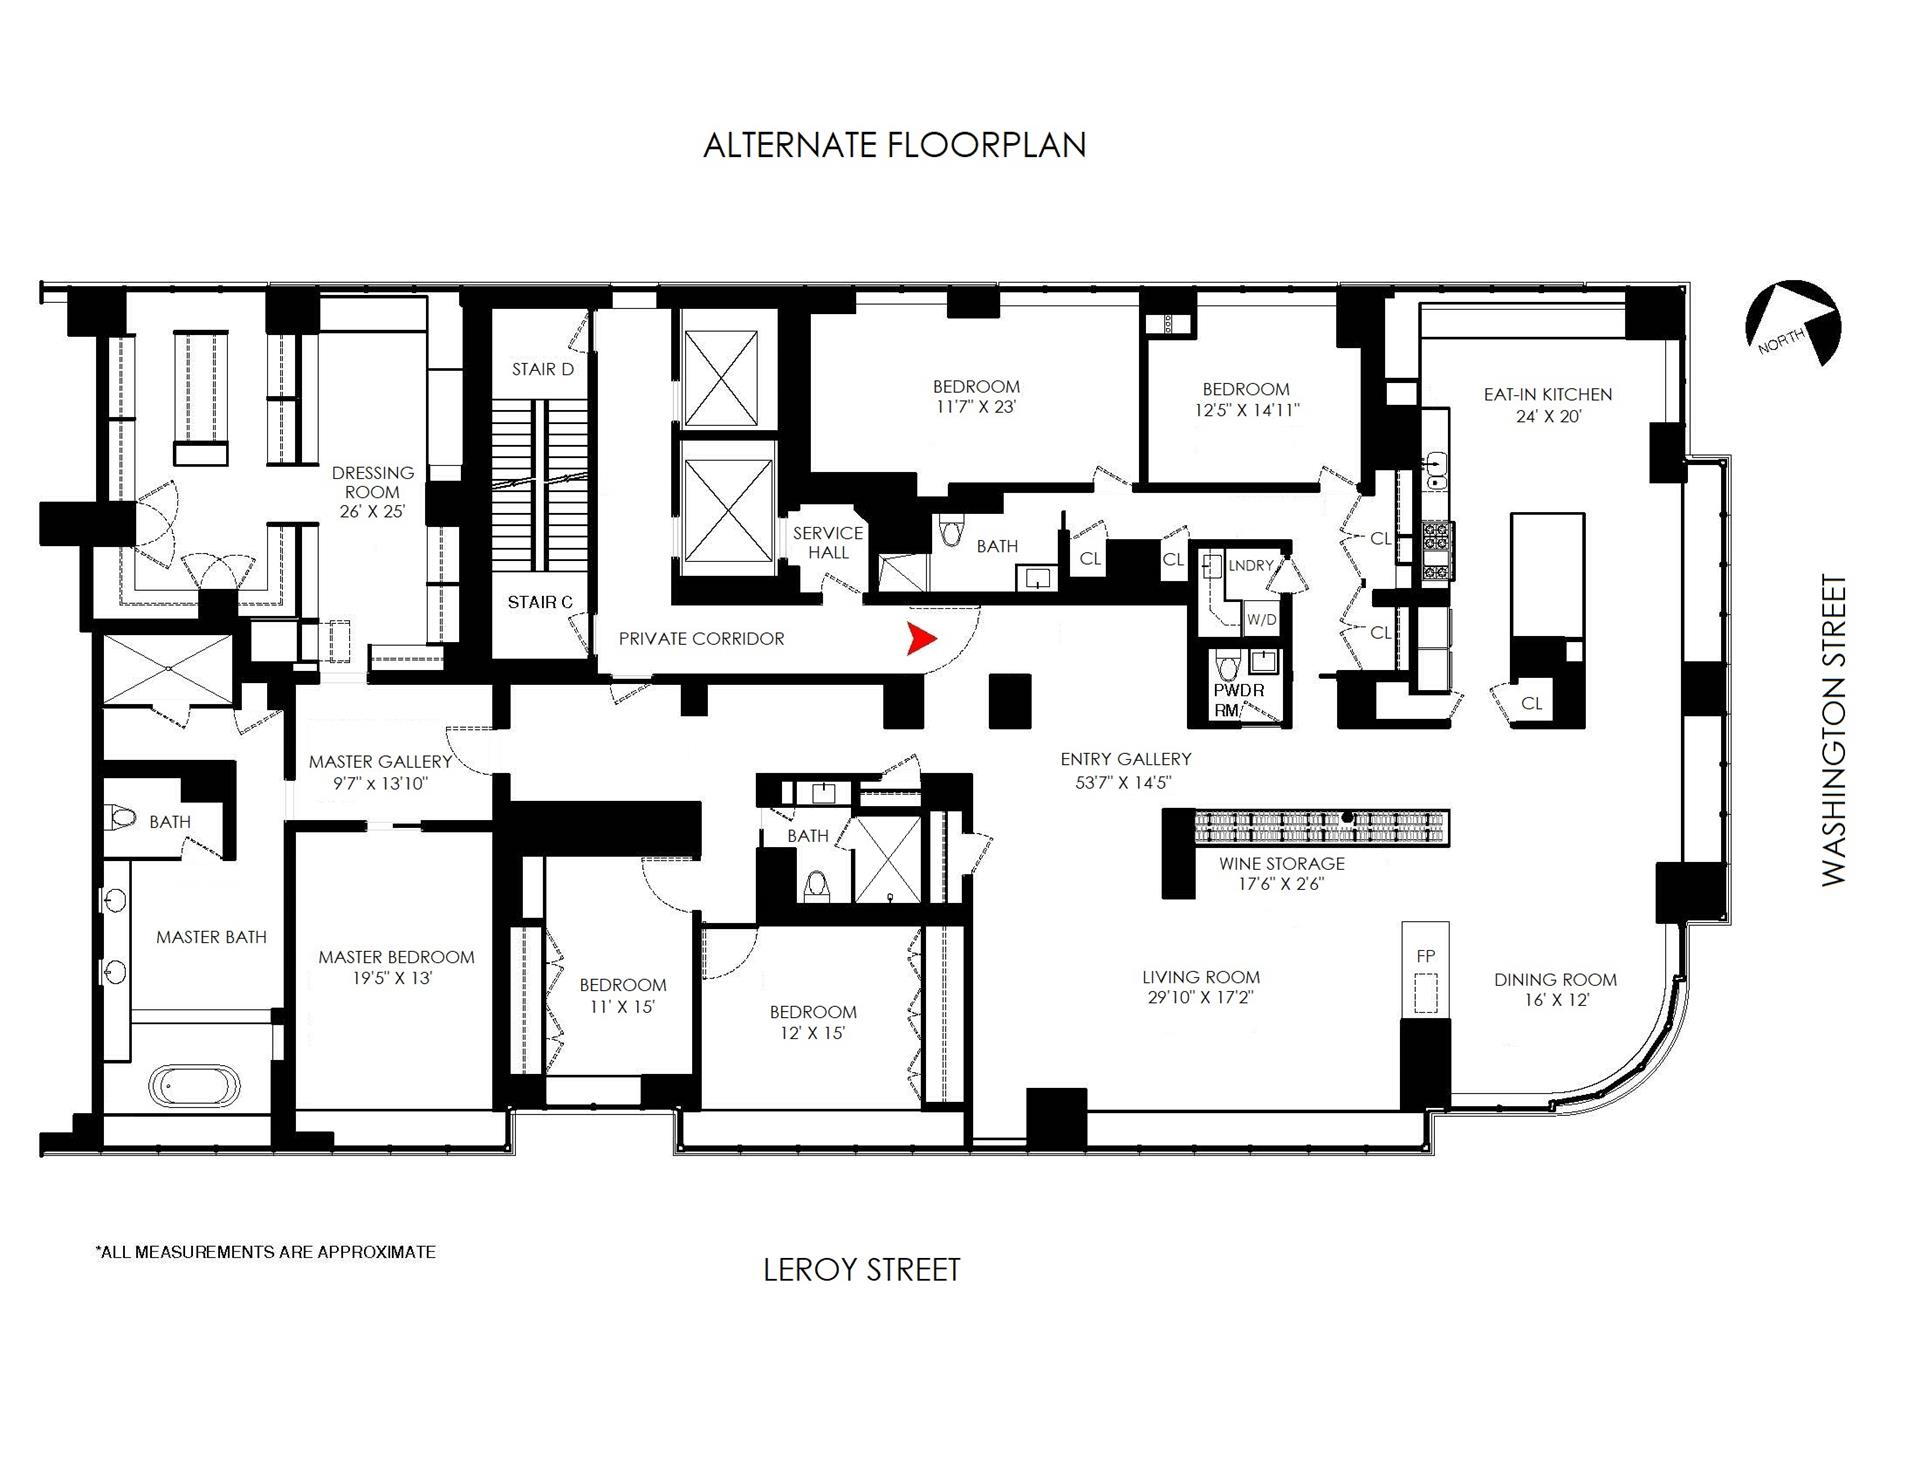 Floor plan of 1 Morton Square, PH15 - West Village - Meatpacking District, New York